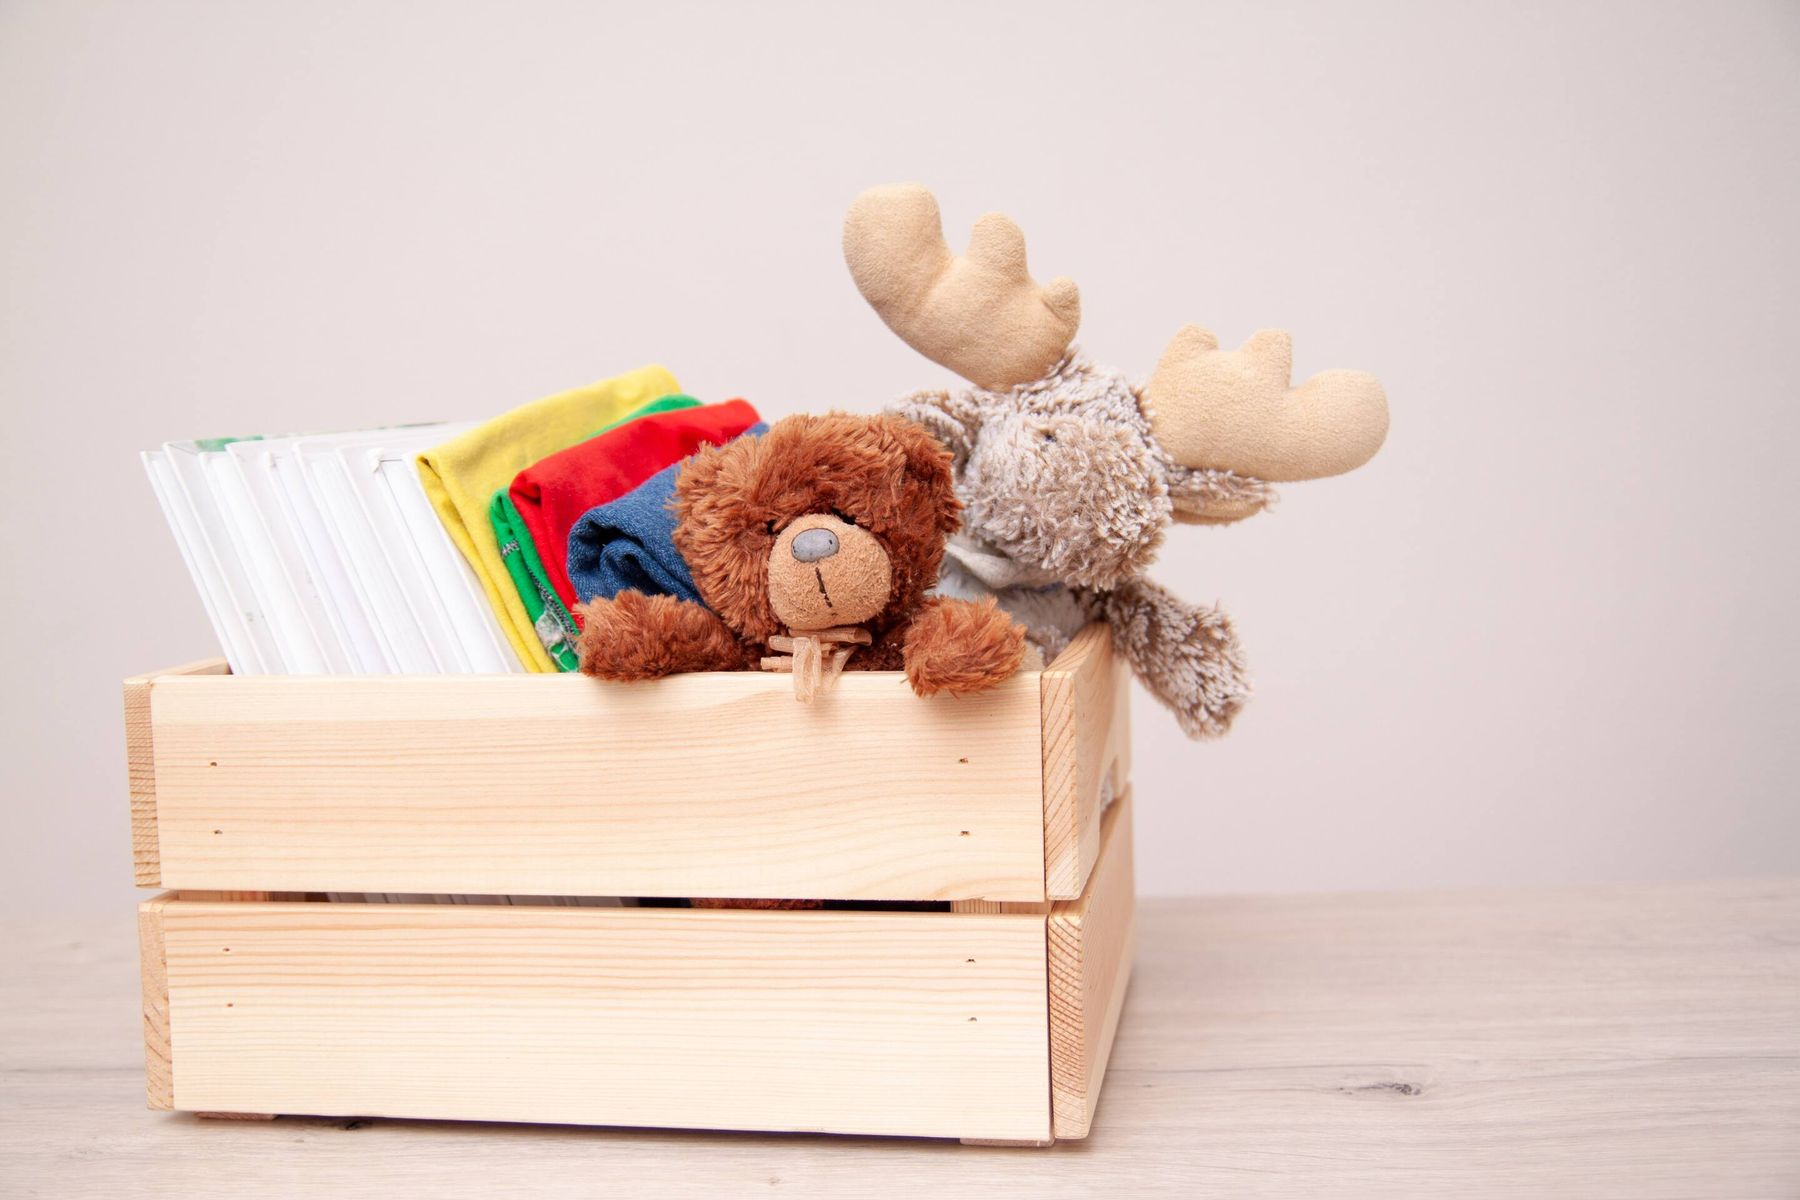 toys and books in a wooden box